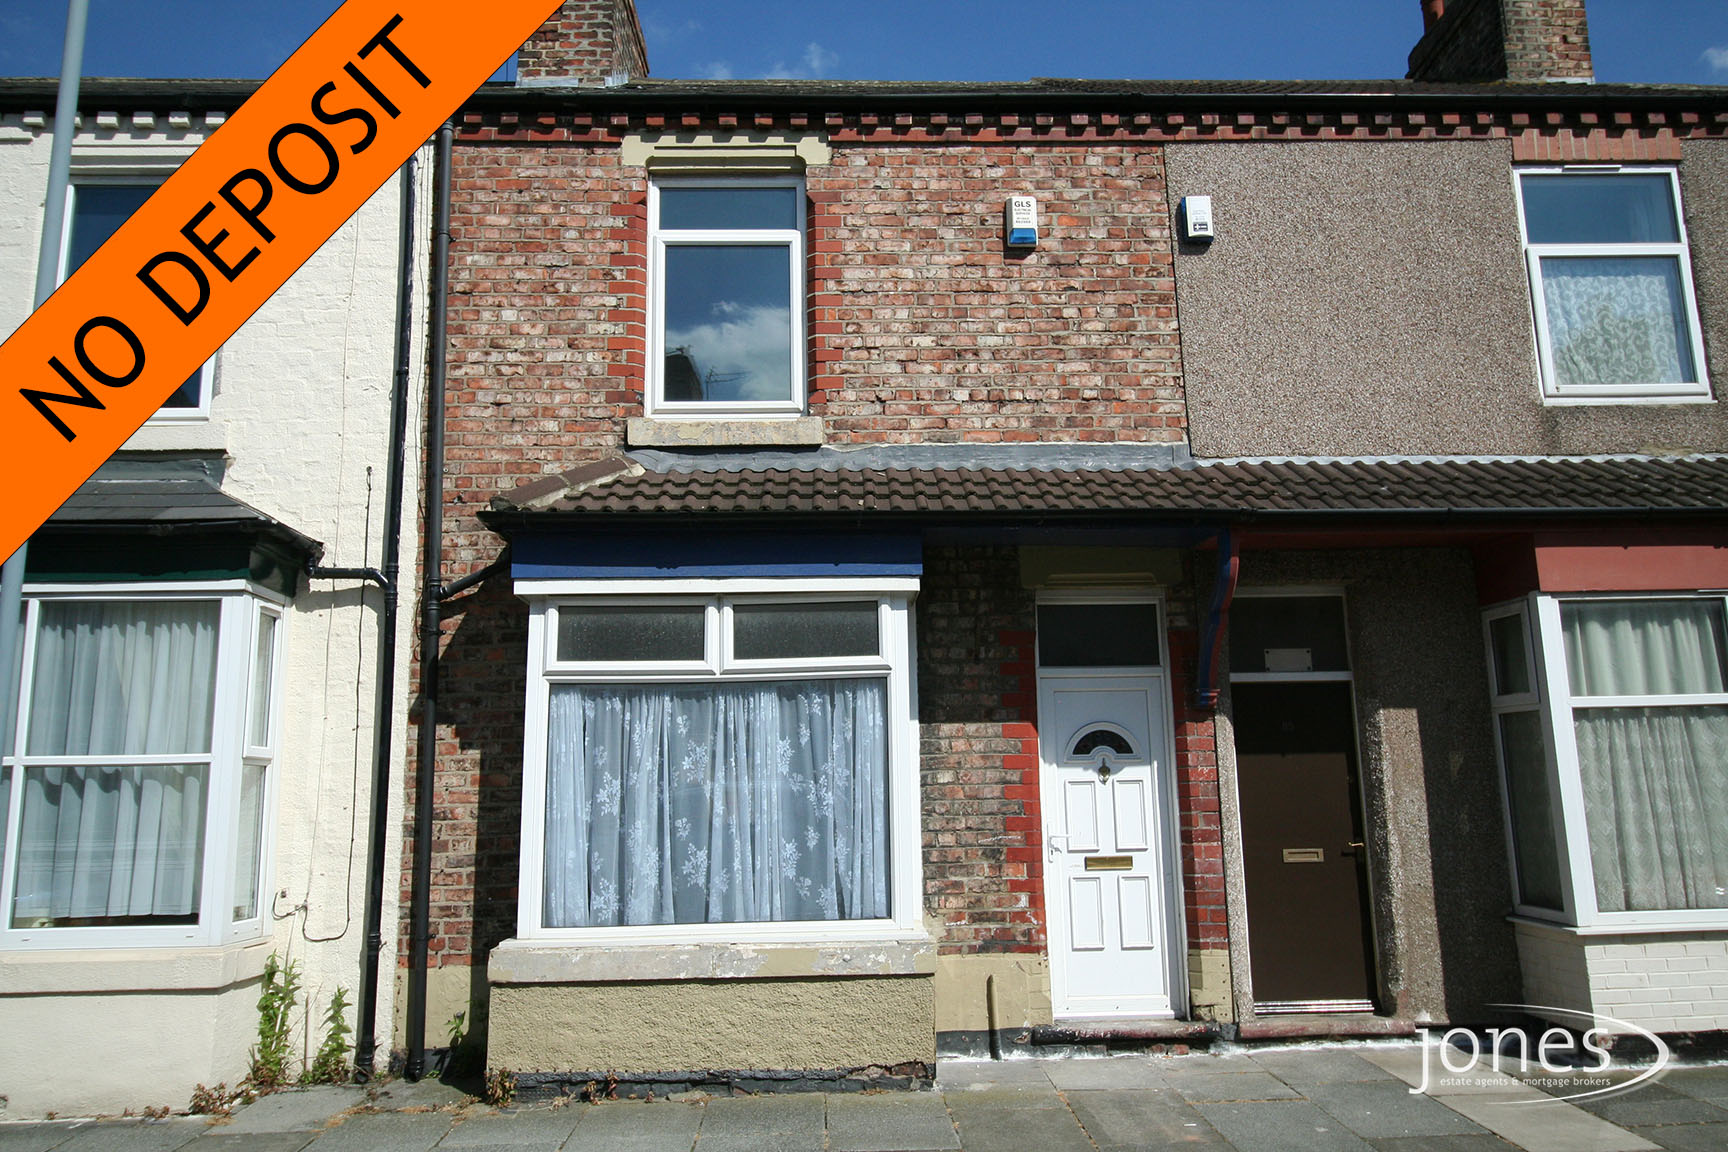 Home for Sale Let - Photo 01 Mansfield Avenue, Thornaby, Stockton on Tees, TS17 7HQ